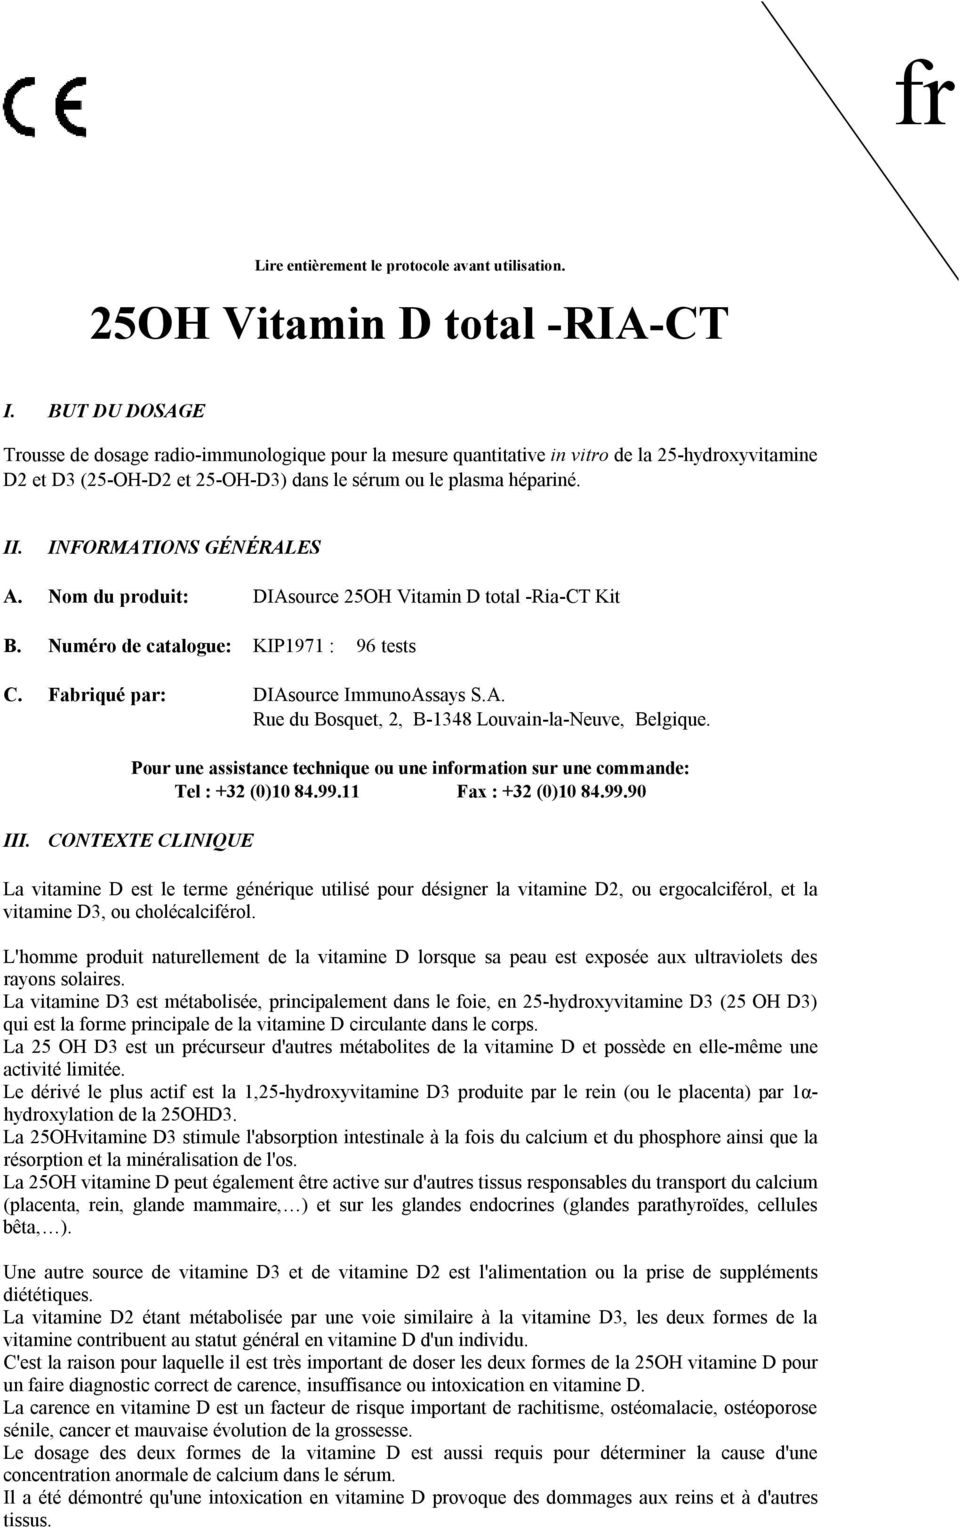 IFORMATIOS GÉÉRALES A. om du produit: DIAsource 25OH Vitamin D total RiaCT Kit B. uméro de catalogue: KIP1971 : 96 tests C. Fabriqué par: DIAsource ImmunoAssays S.A. Rue du Bosquet, 2, B1348 Louvainlaeuve, Belgique.